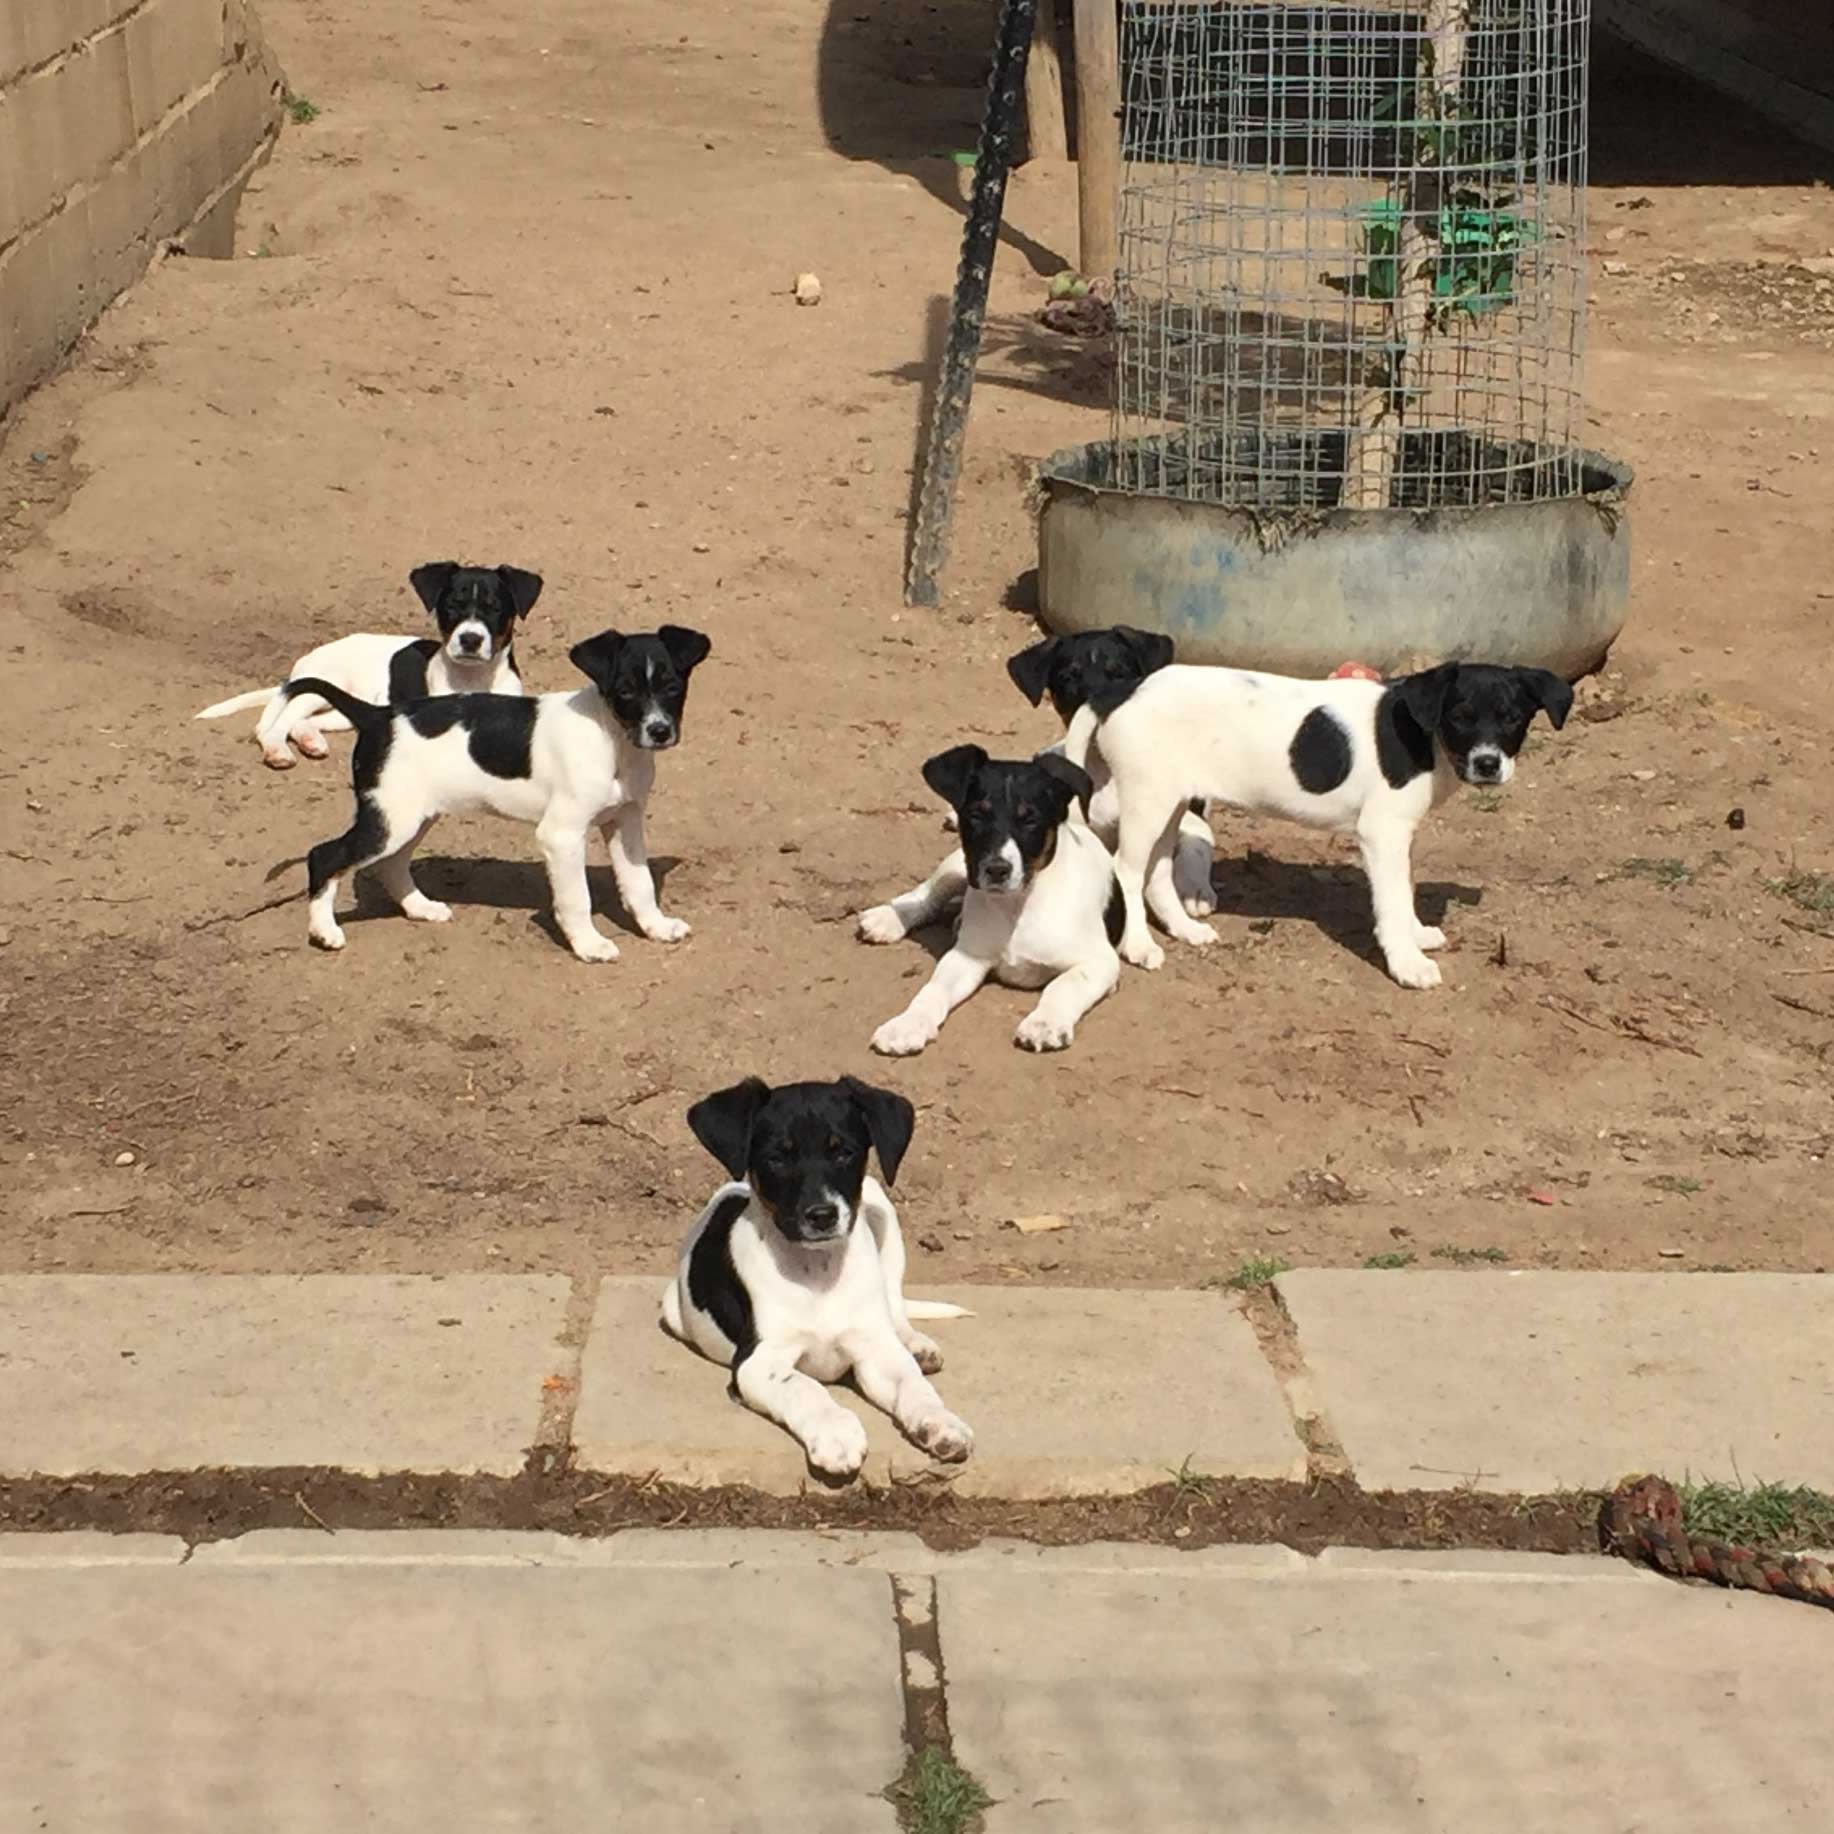 New Dog and Cat Rescue project in South Africa!